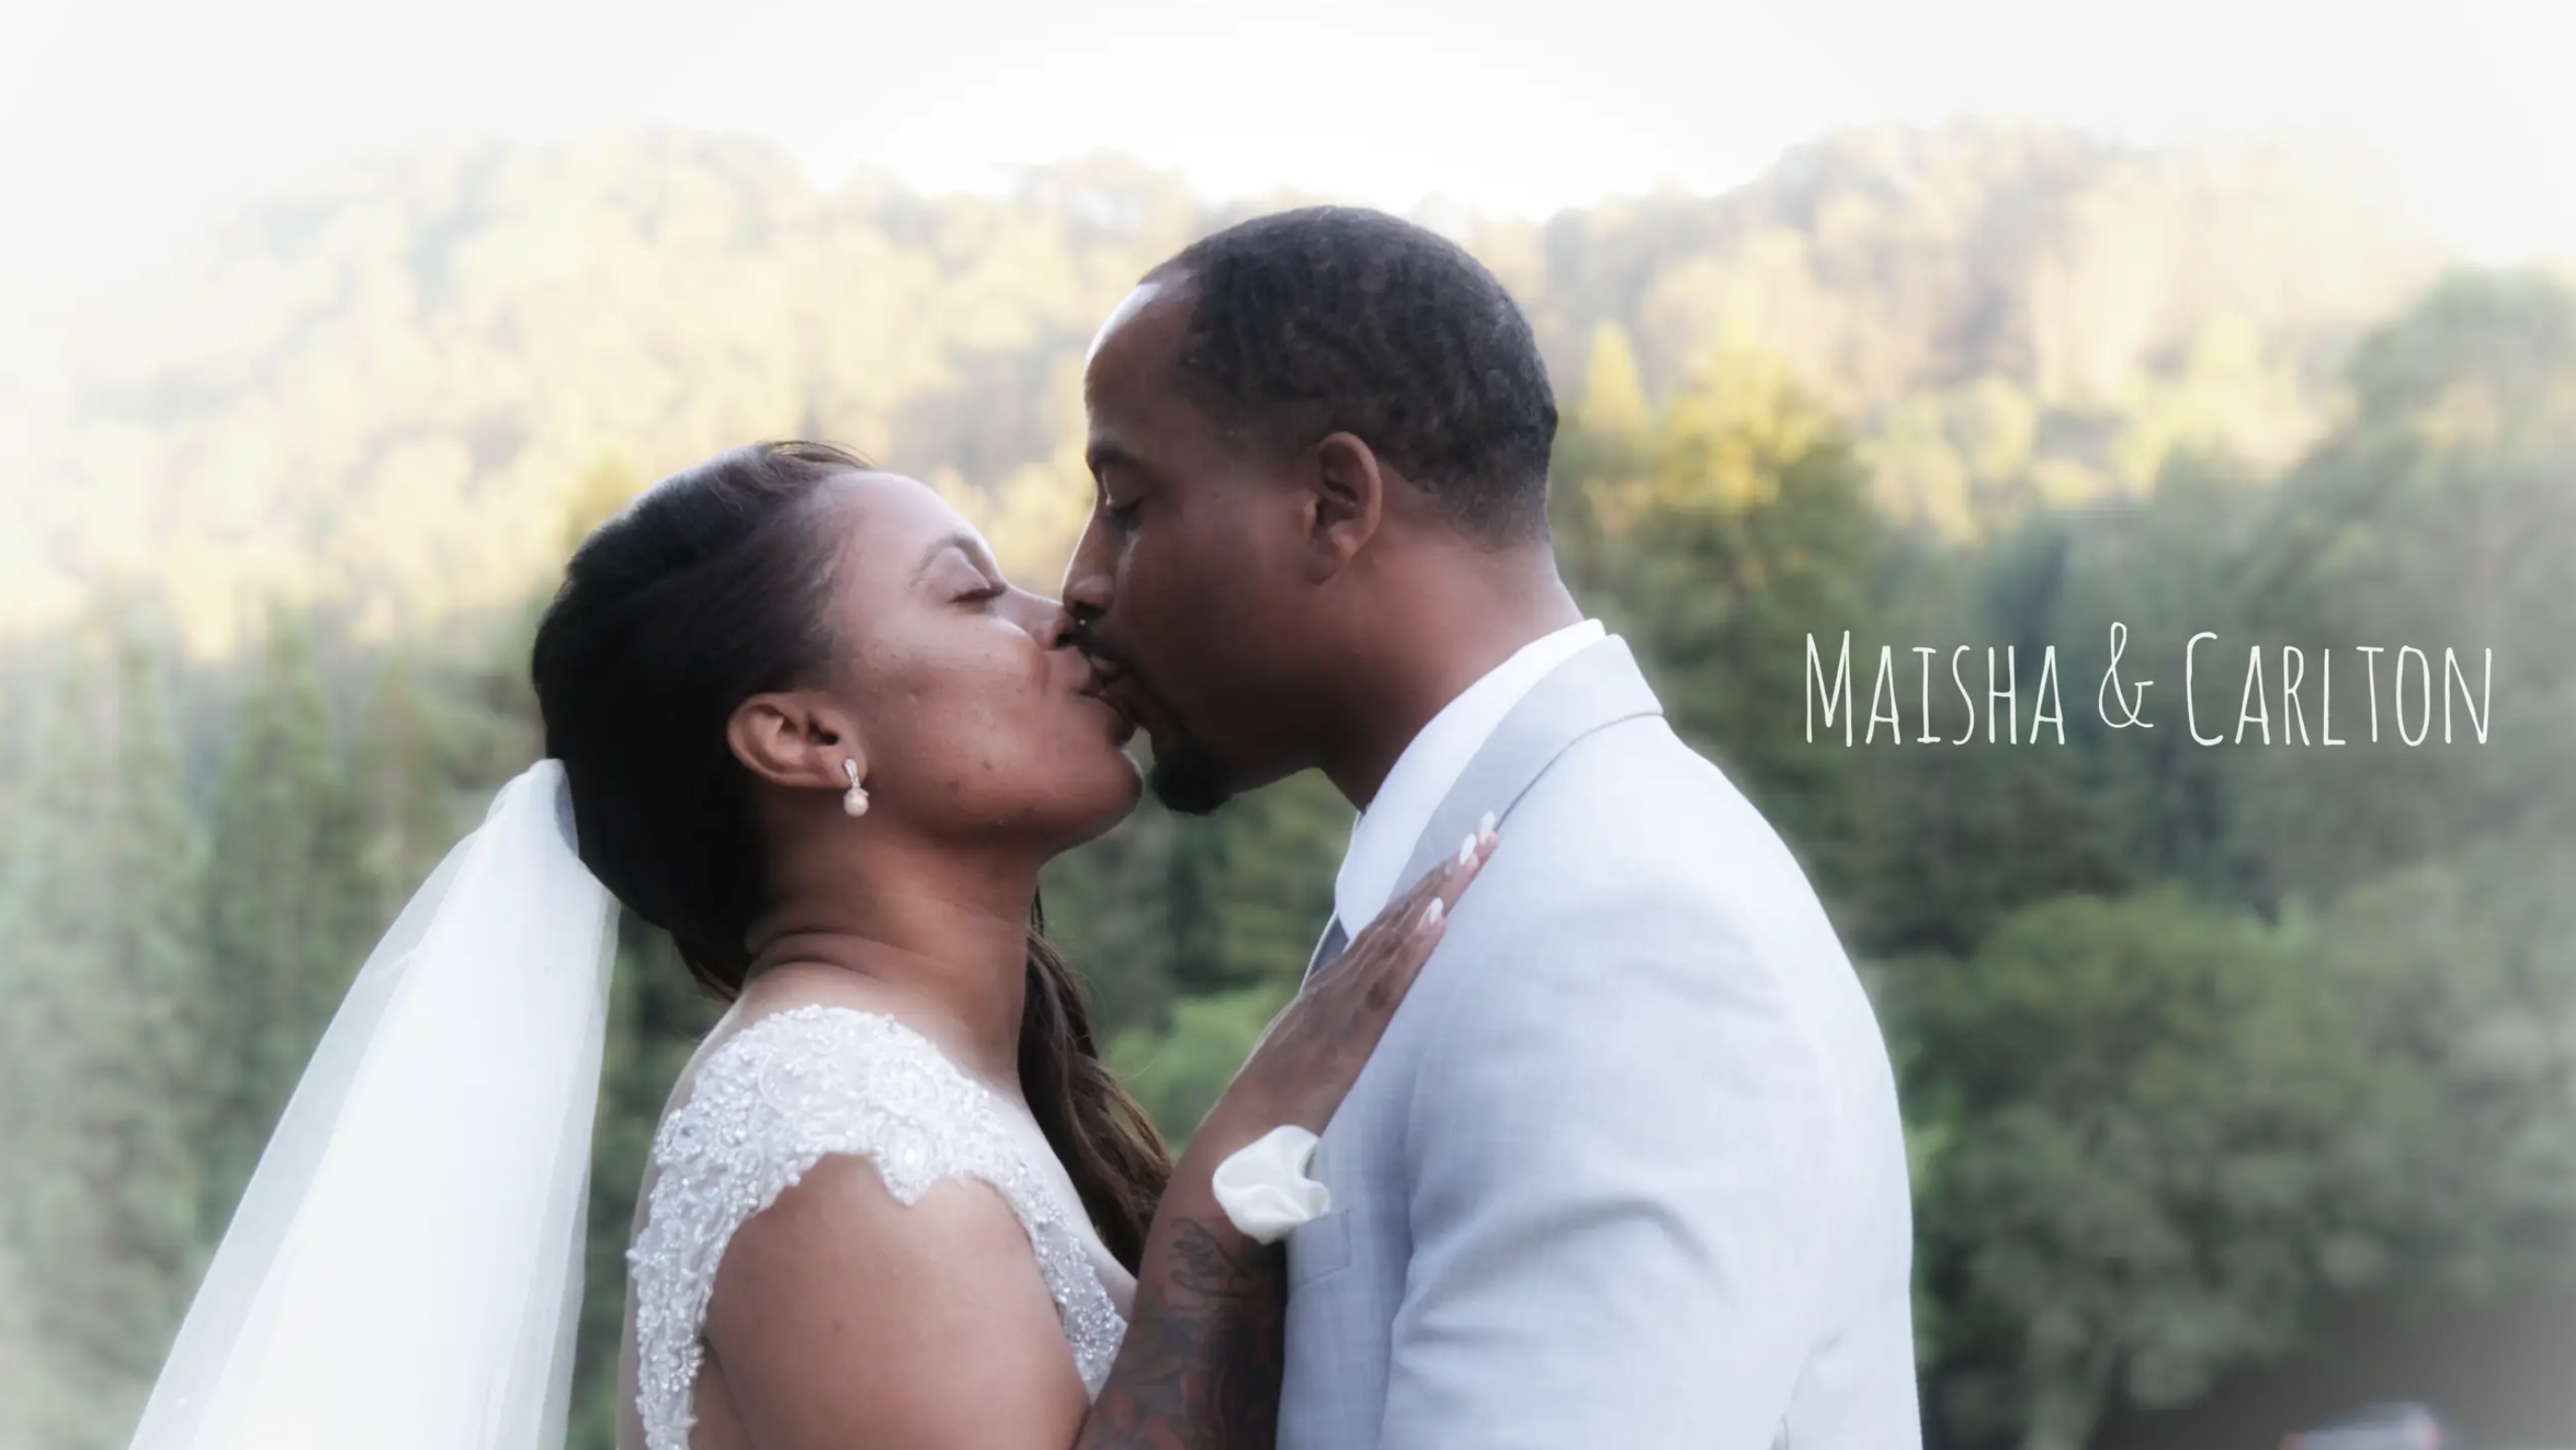 Maisha + Carlton | Berkeley, California | The Brazilian Room